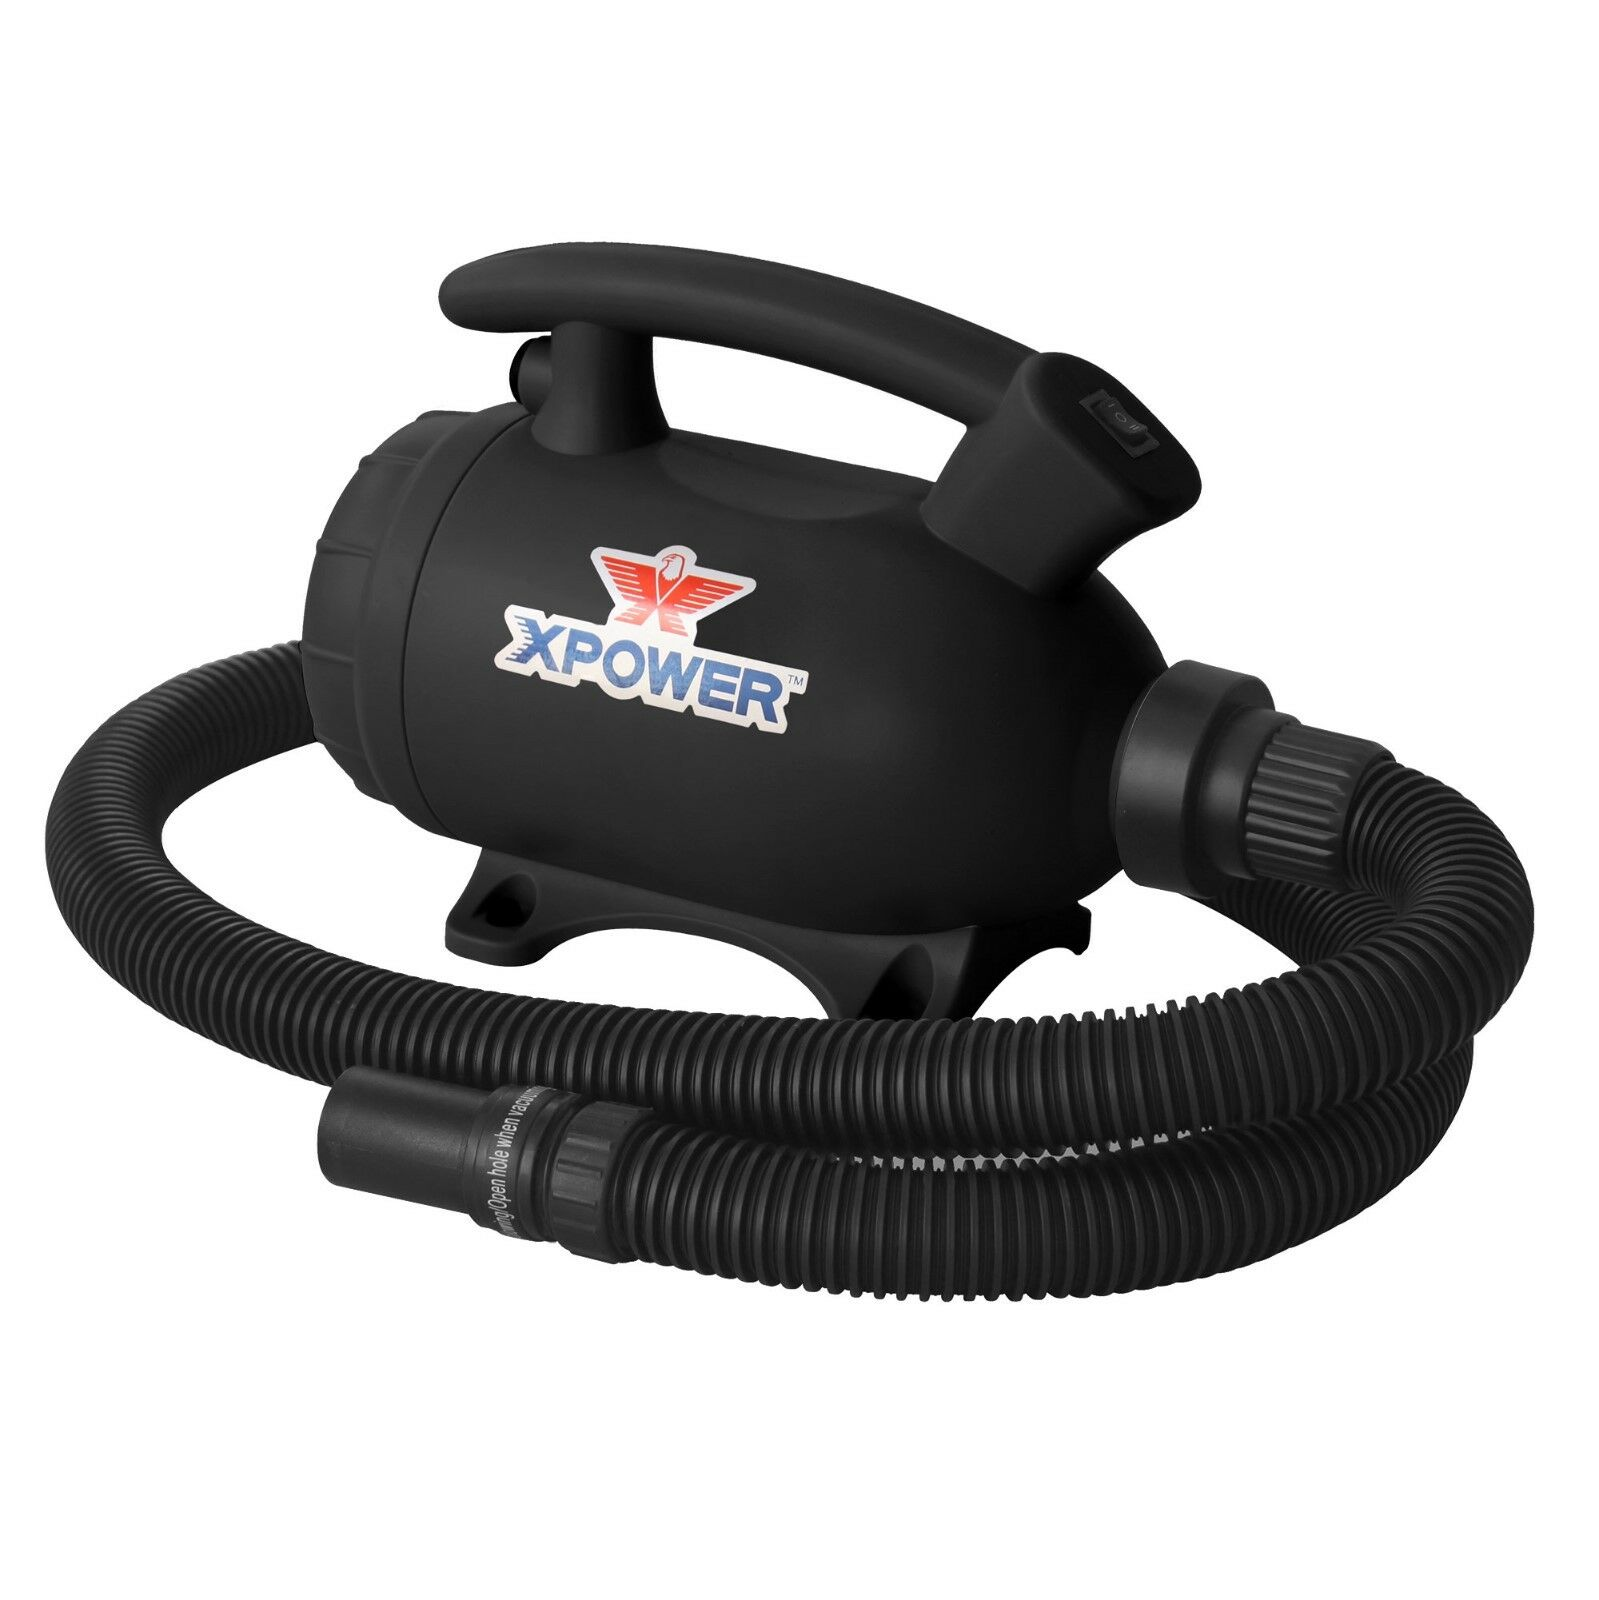 XPOWER A-5 2 HP 2 Speed Multi-Use Electronics Air Duster   Dryer   Air Pump